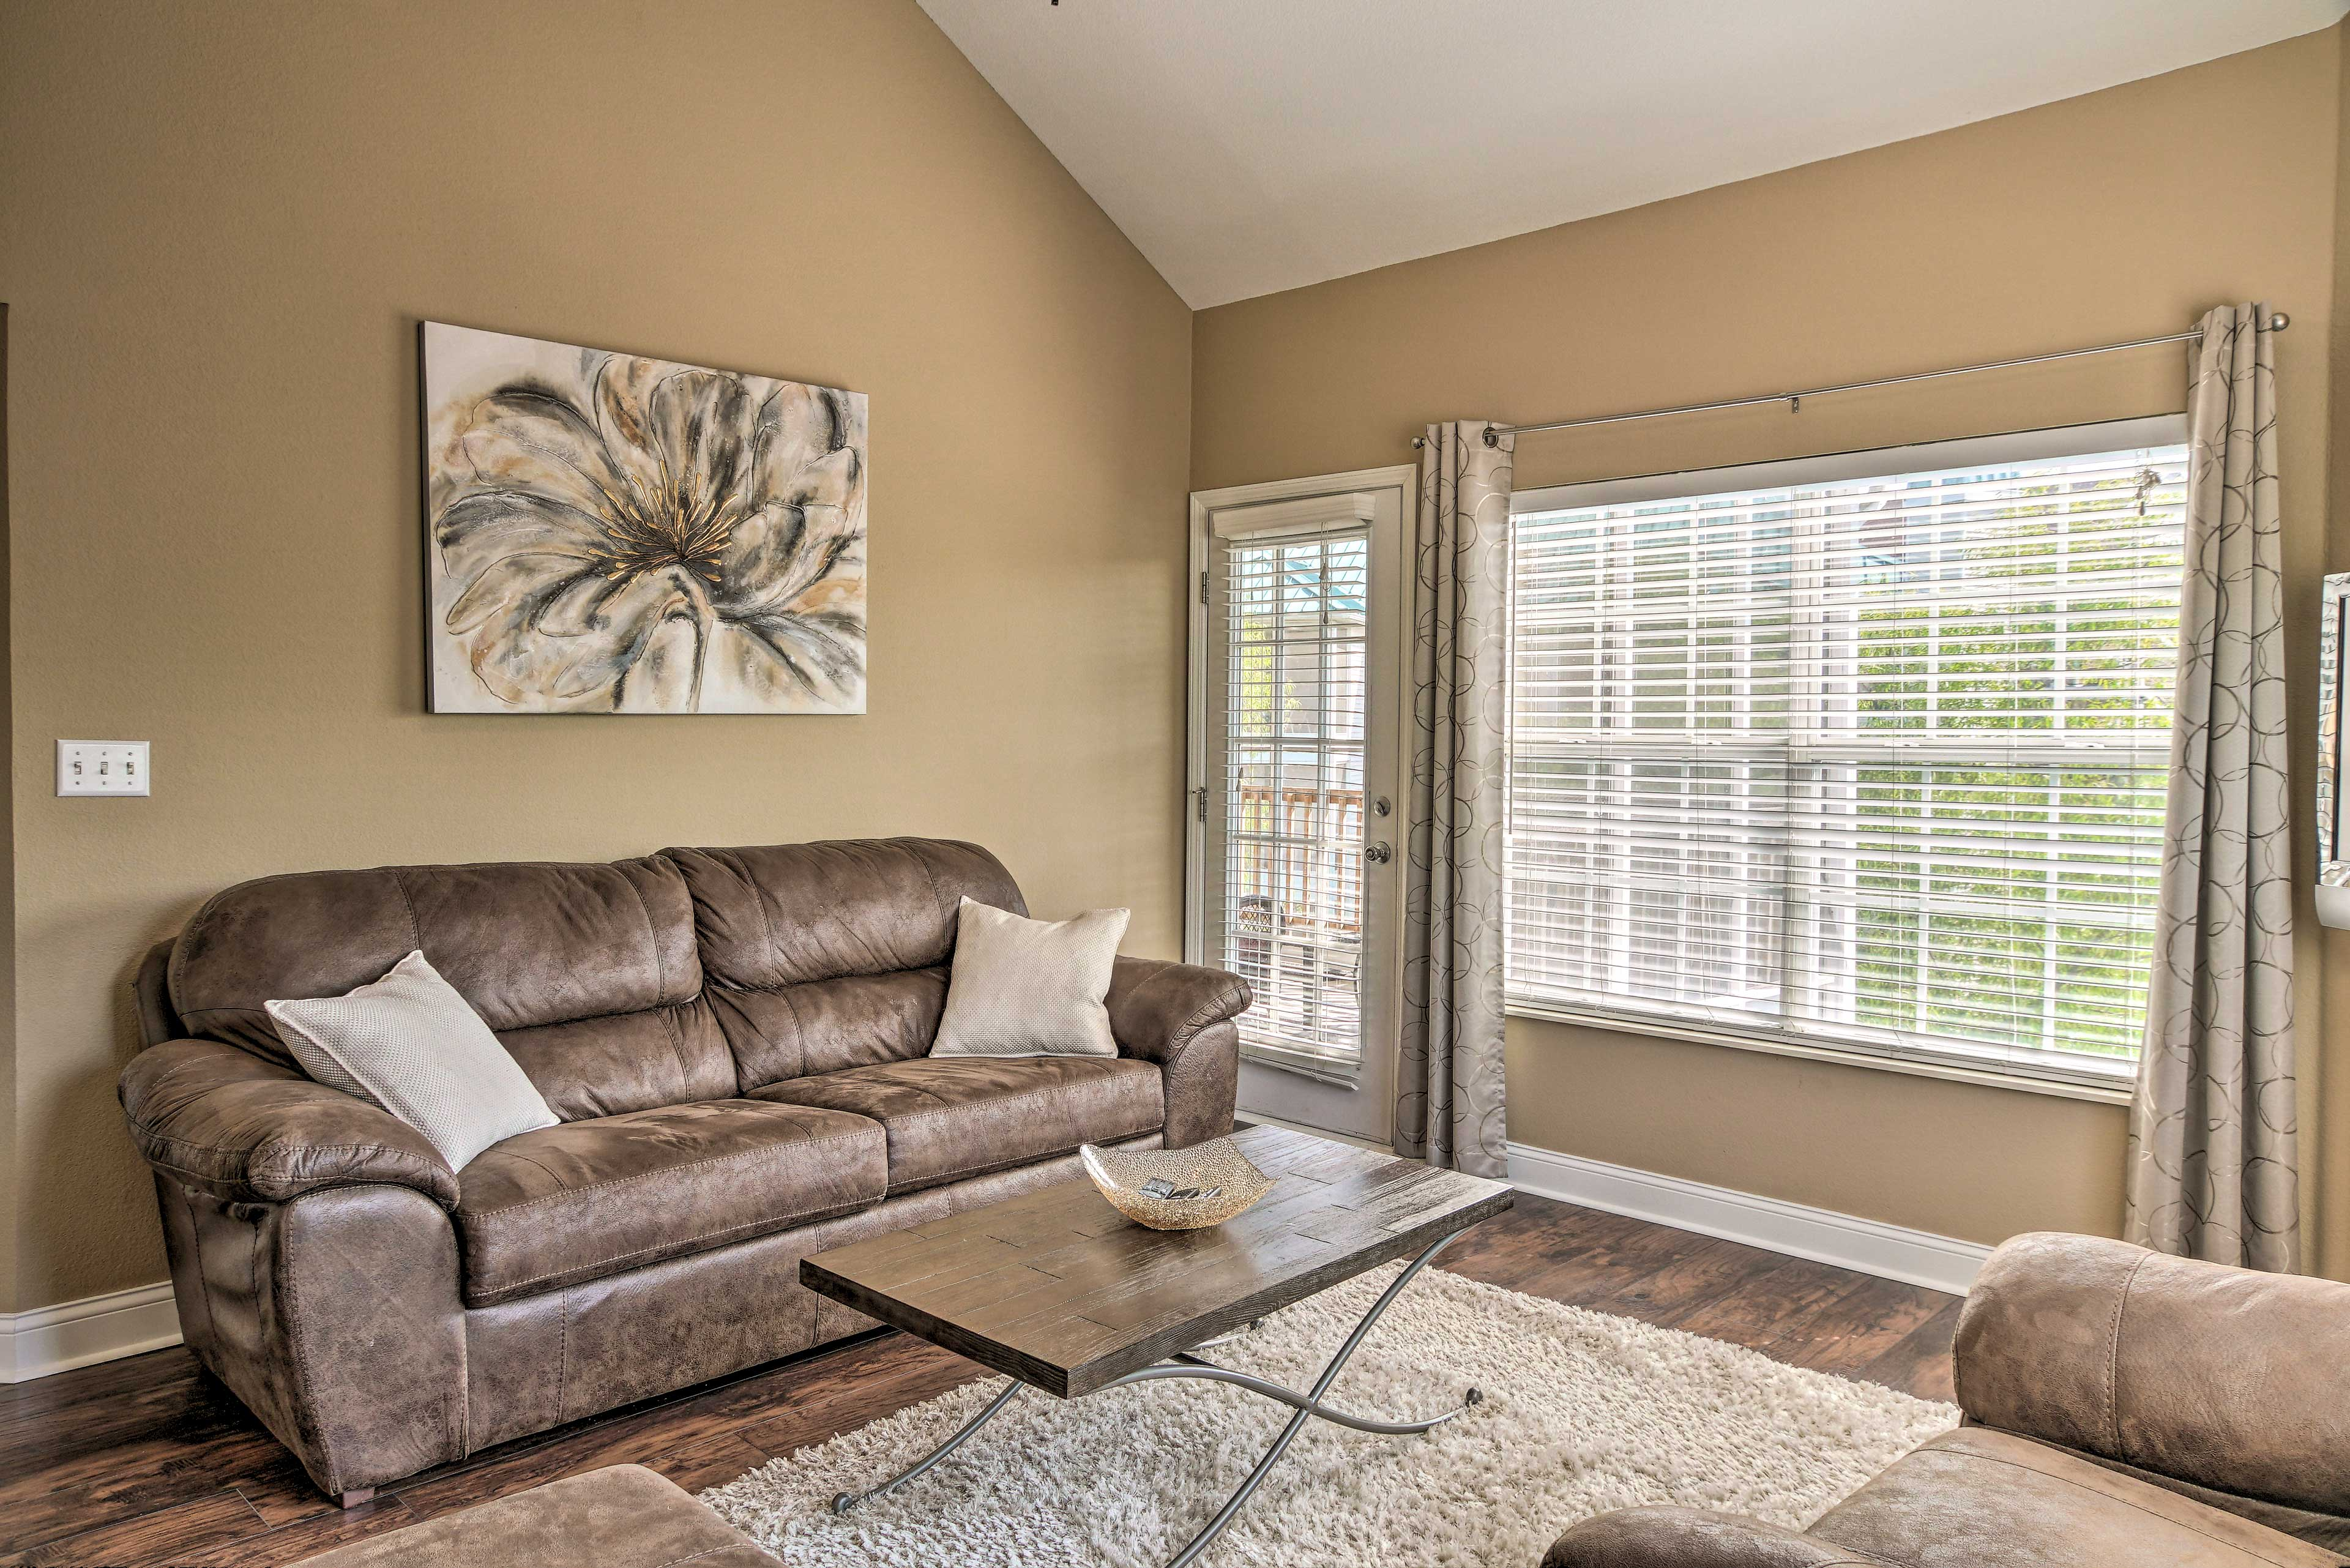 This sleeper sofa accommodates 2 guests.